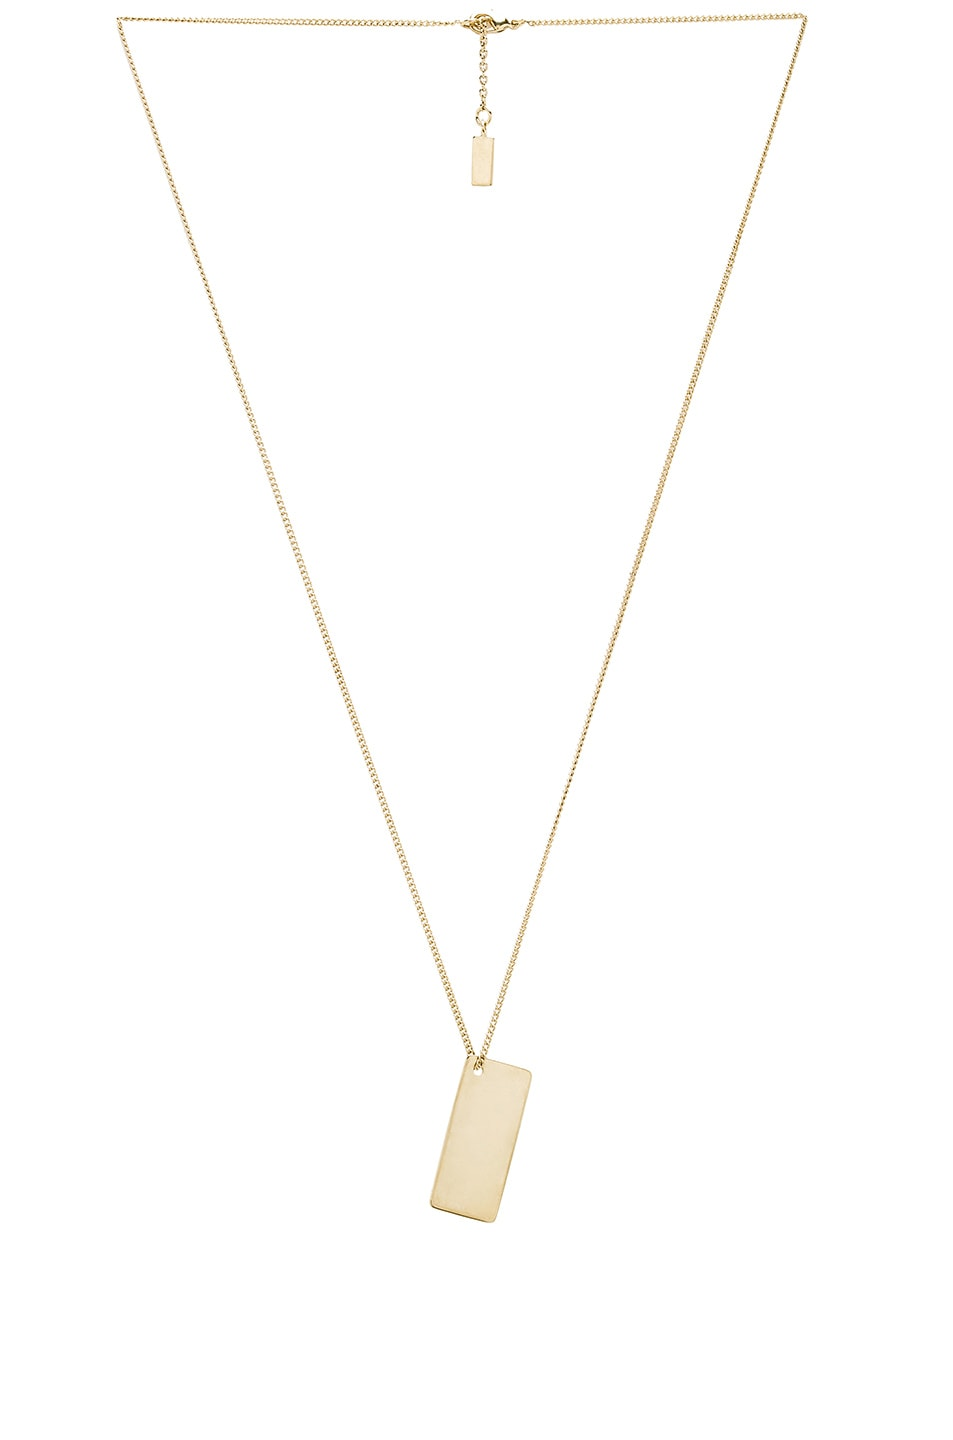 apc zagora a gold c necklace p women